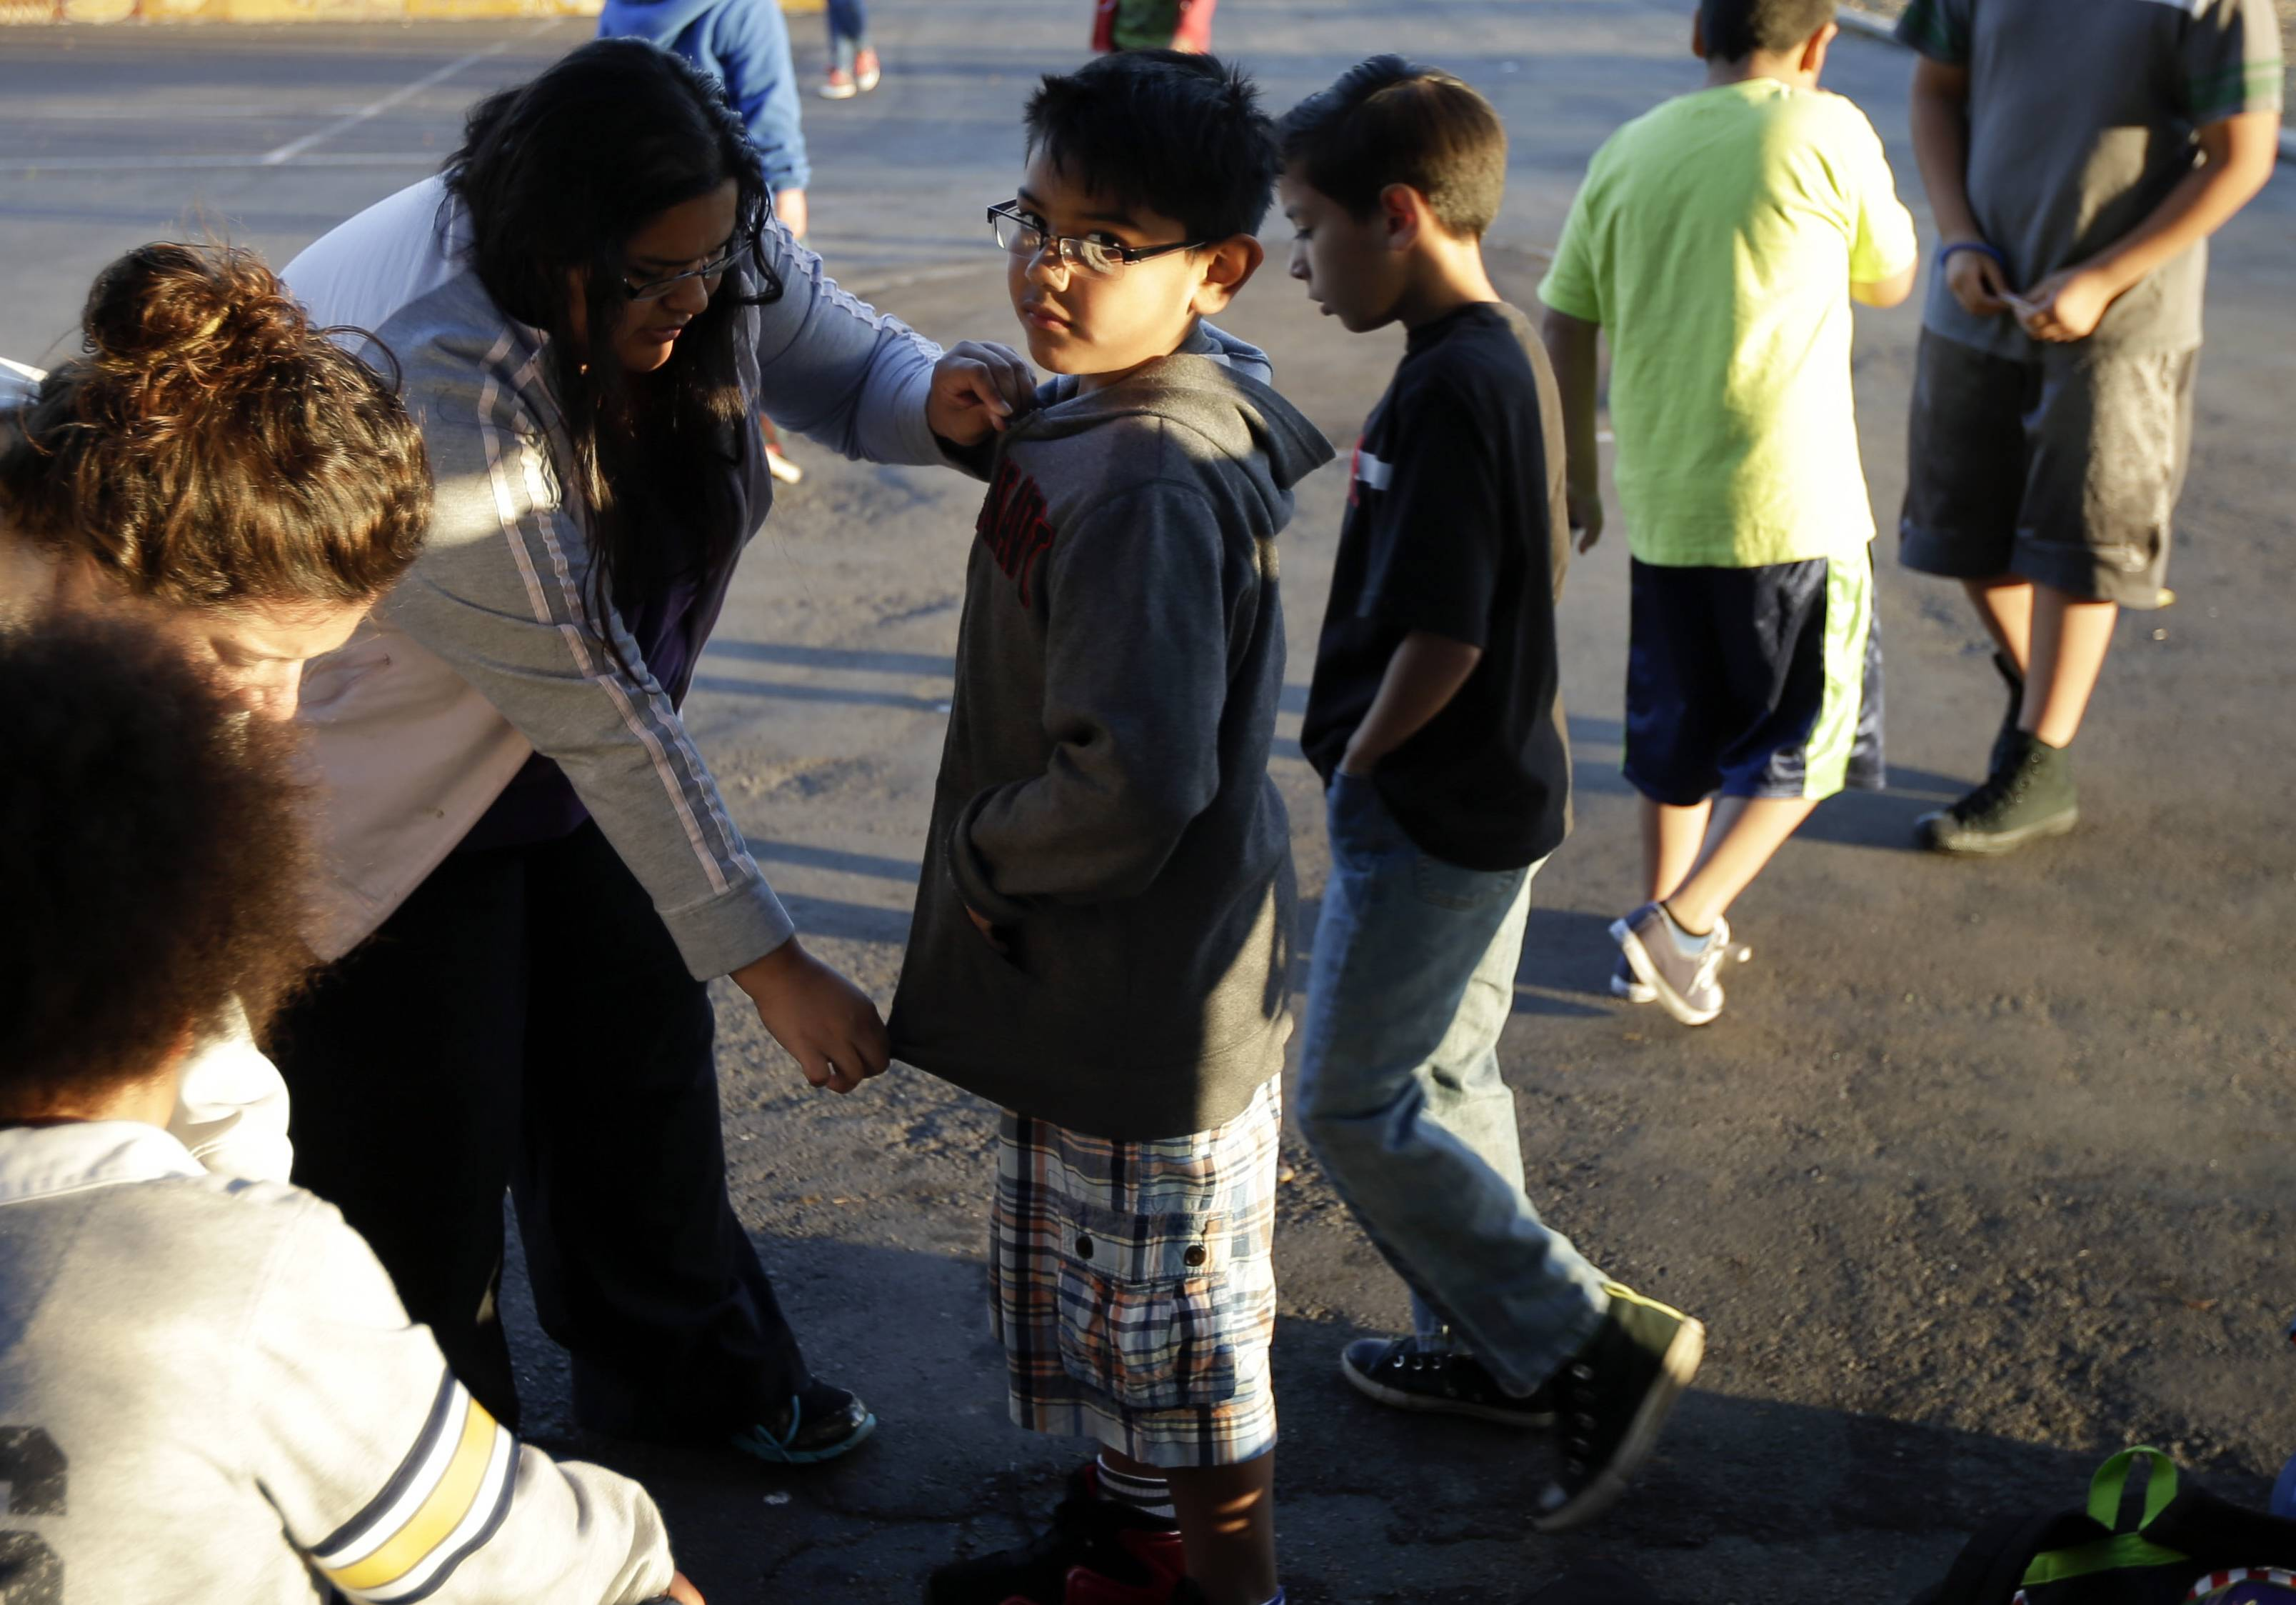 Marina Beltran, left, zips up the jacket of her son Antonio before he takes part in an early morning running program at his elementary school in Chula Vista, Calif. Amid alarming national statistics showing an epidemic in childhood obesity, hundreds of thousands of students across the country are being weighed and measured.